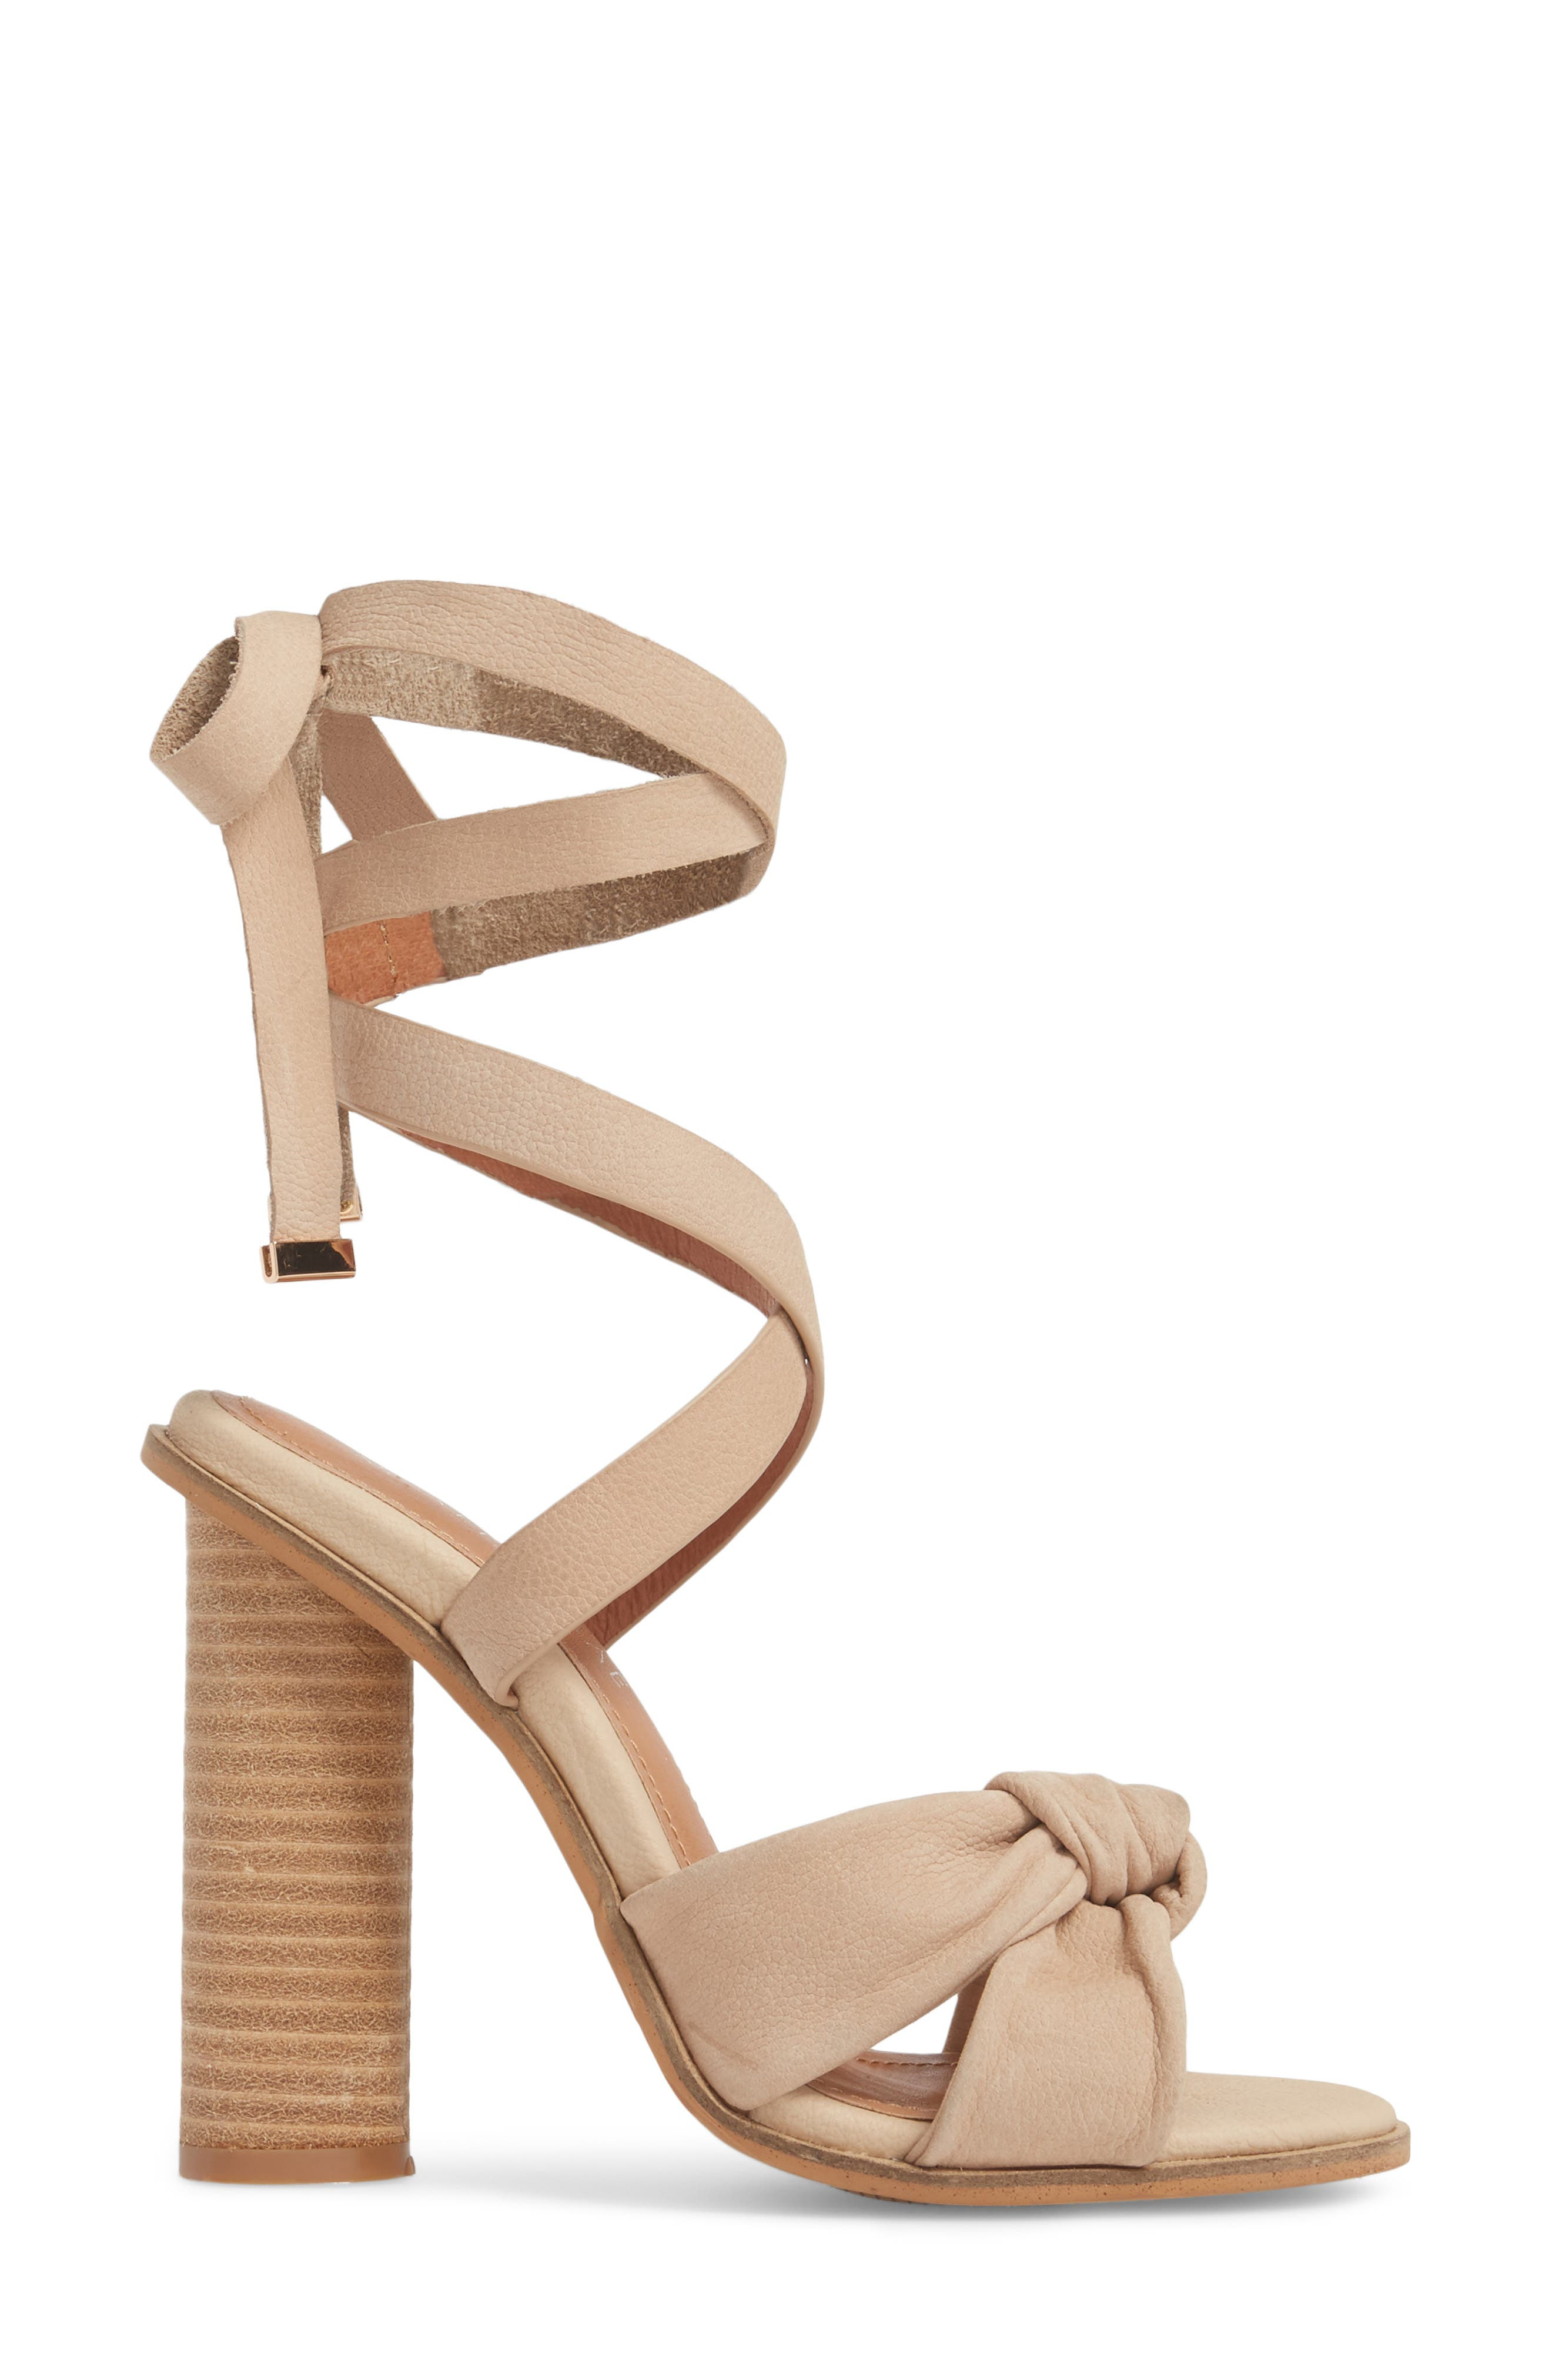 Africa Ankle Wrap Sandal,                             Alternate thumbnail 3, color,                             Natural Leather